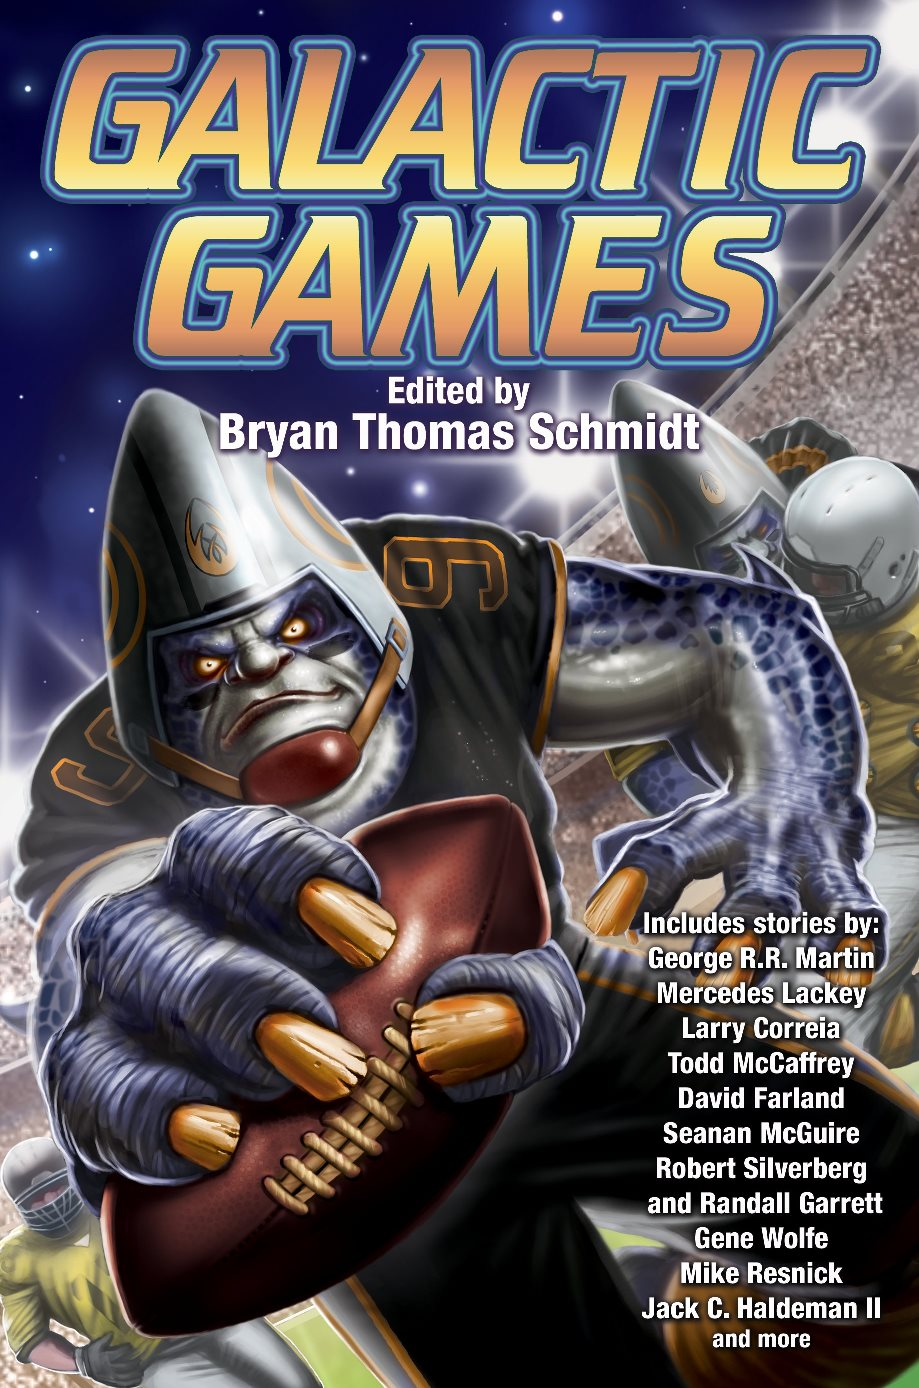 Galactic Games, including short fiction by Gray Rinehart